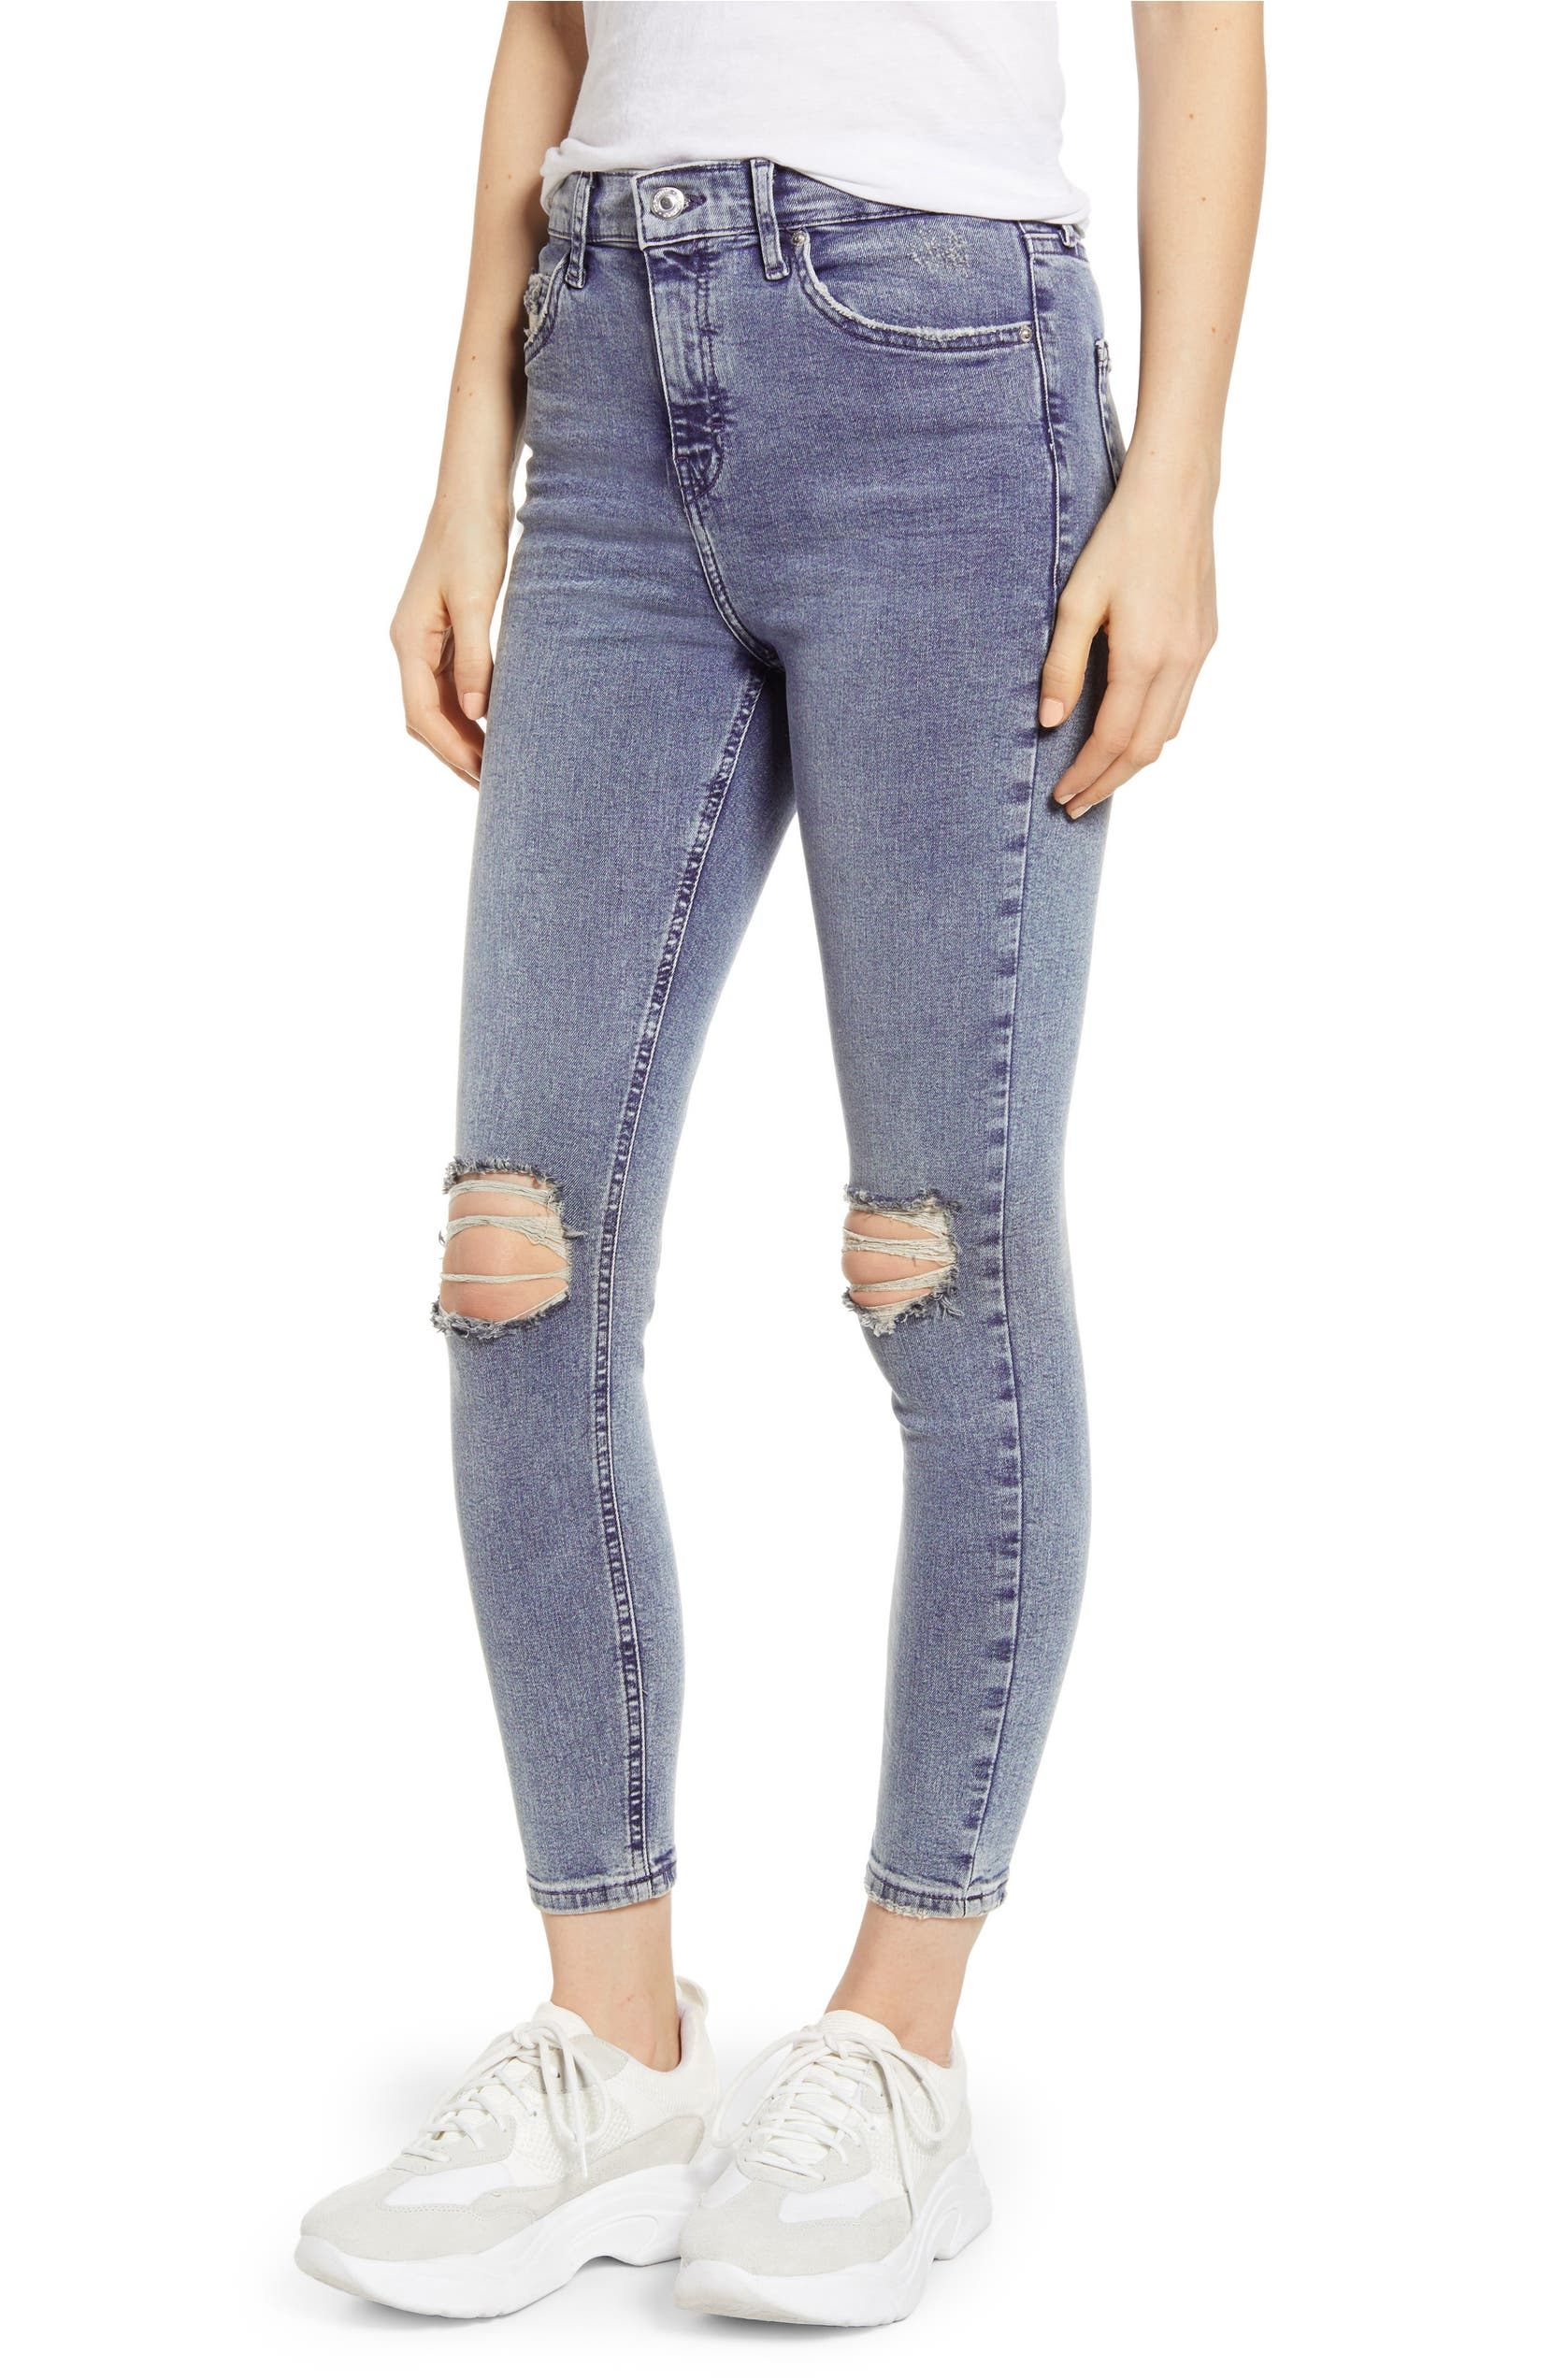 0a1adcf30a5 Topshop Jamie Ripped High Waist Skinny Jeans   Nordstrom